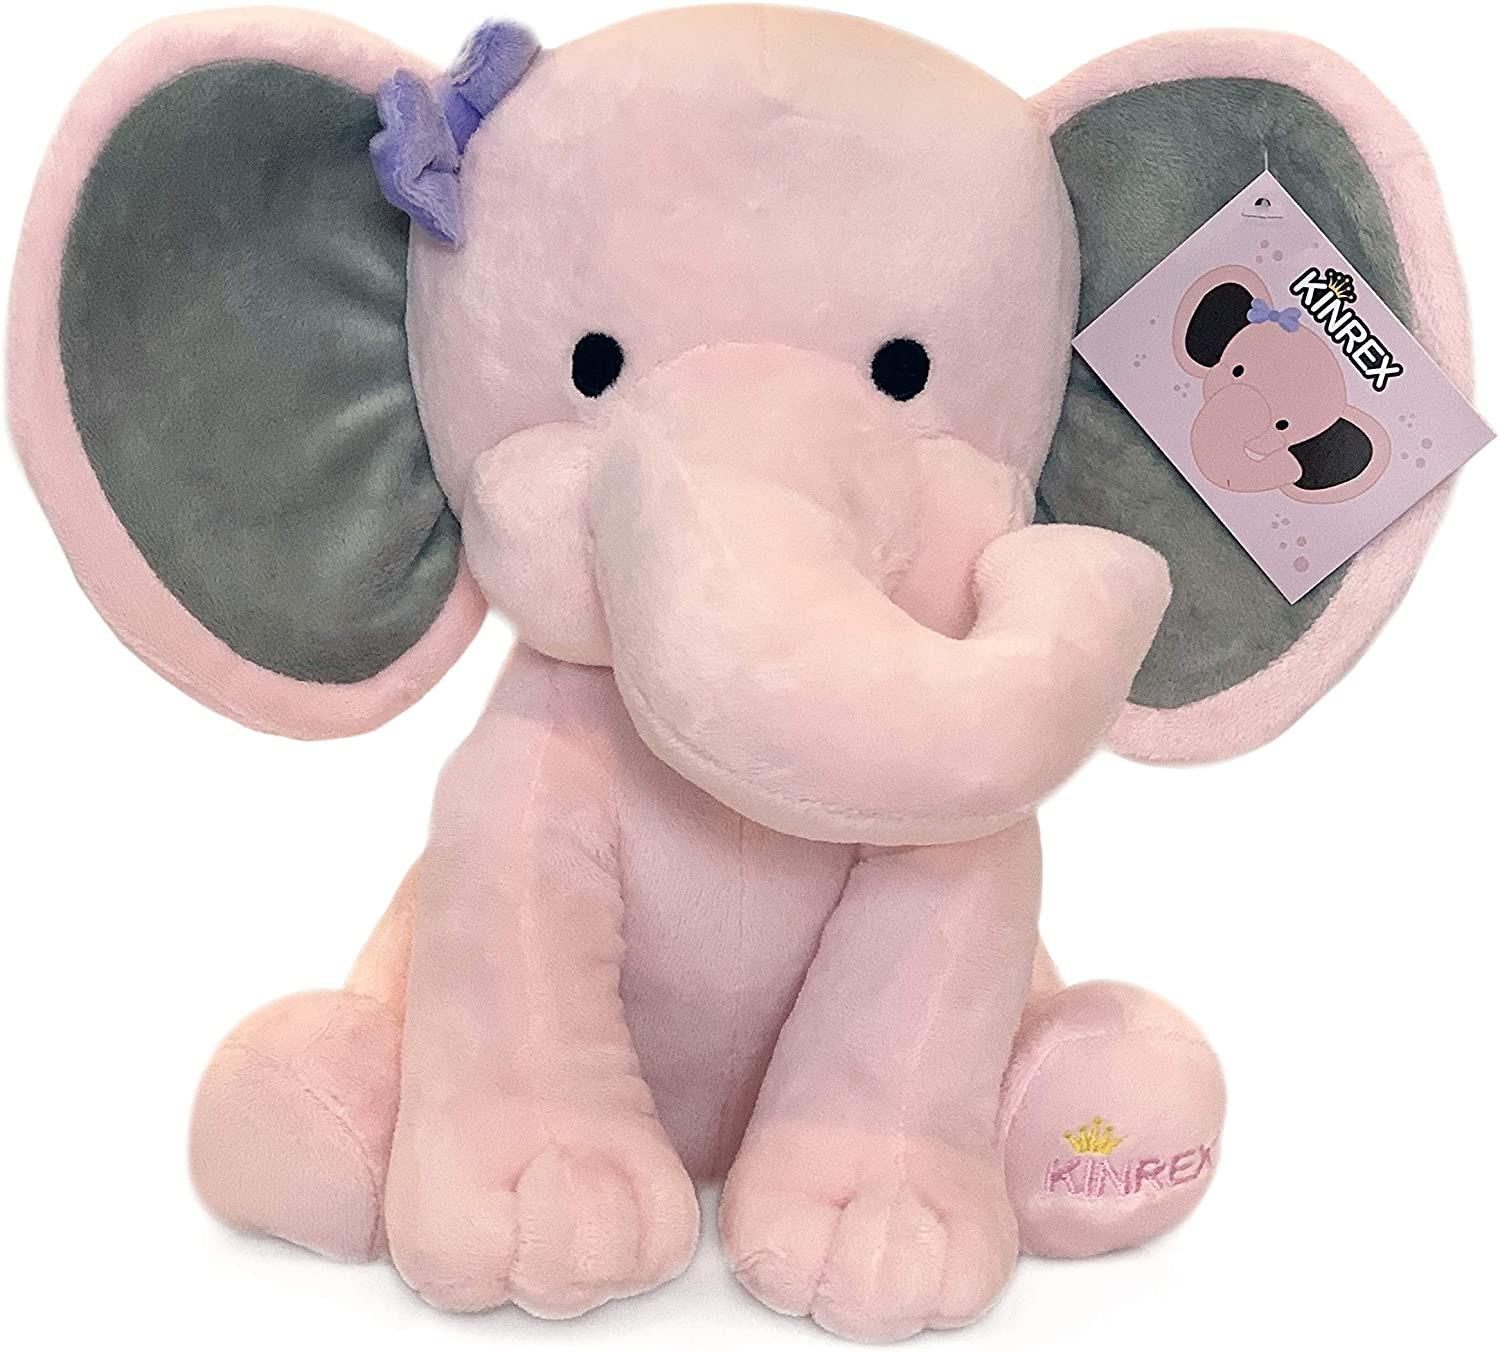 Amazon Com Kinrex Stuffed Elephant Animal Plush Toys For Baby Boy Girls Great For Nursery Room Decor Bed Pink Measures 9 Inches Toys Games